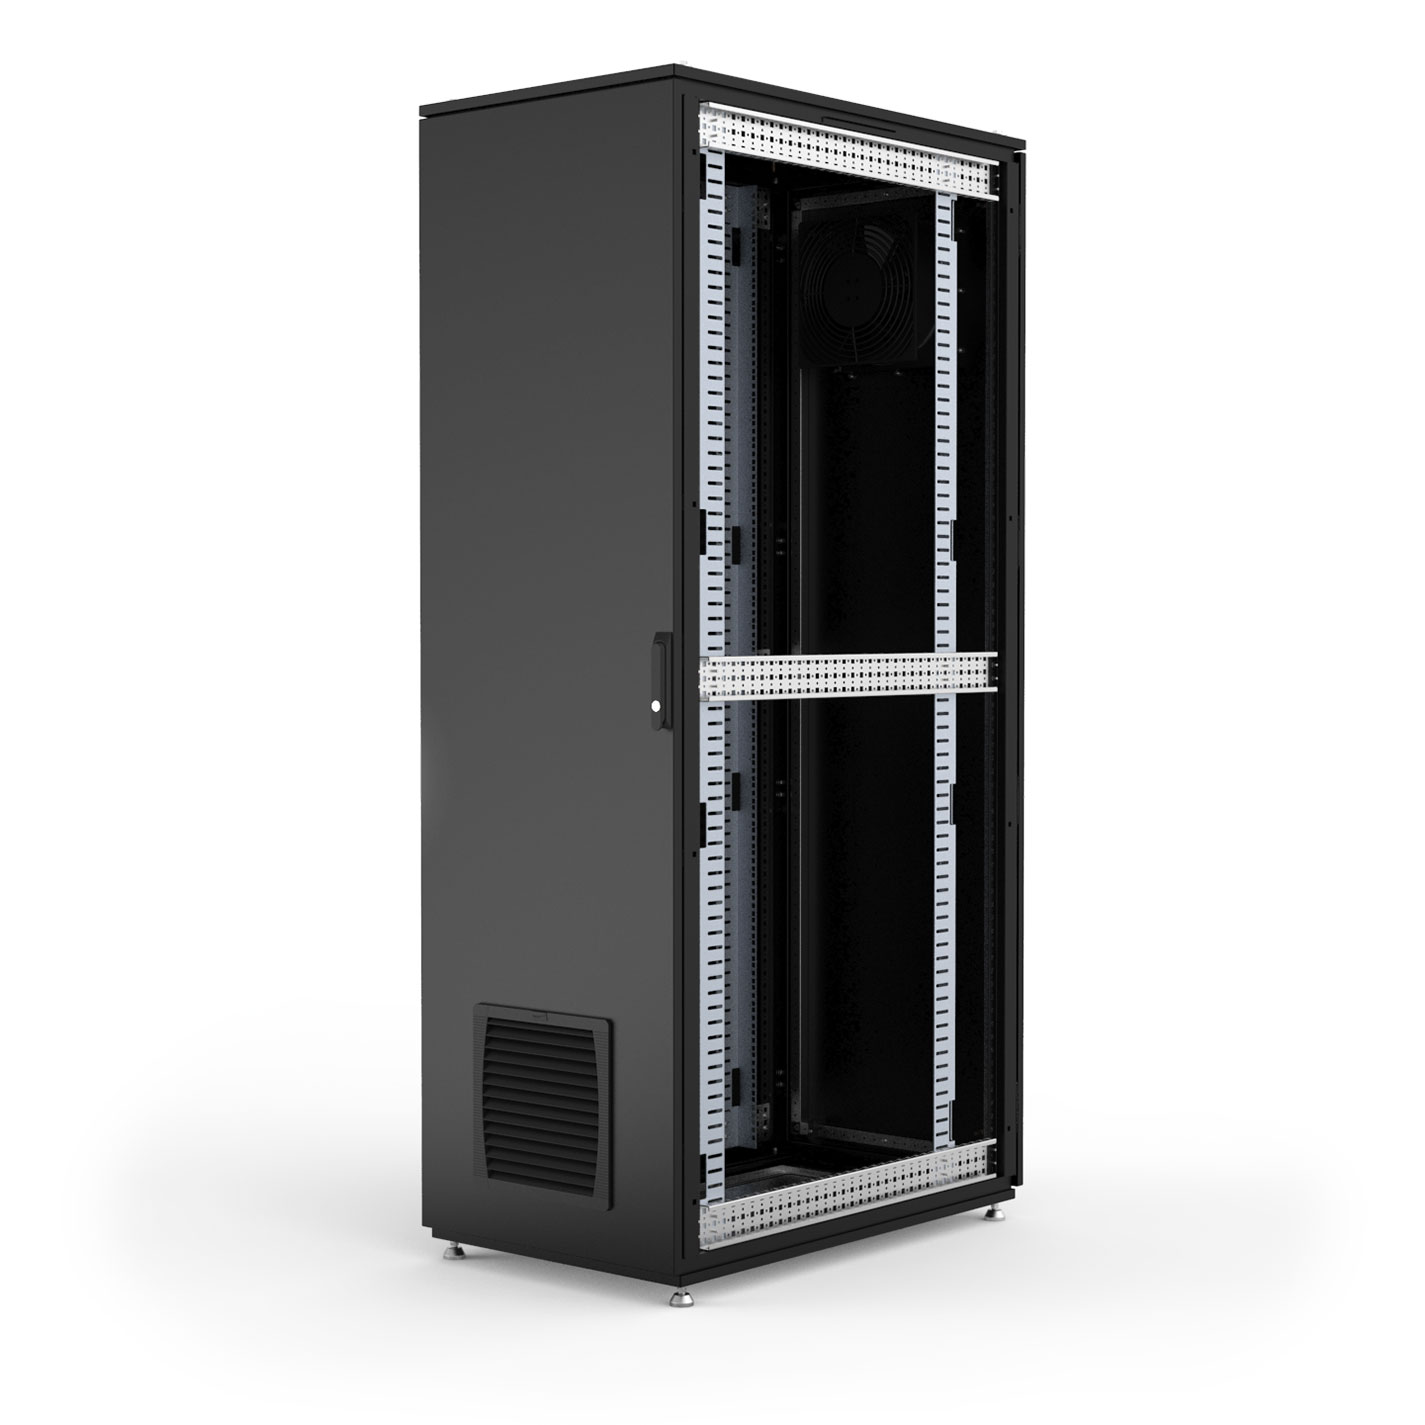 Hammond Rack and Rack Cabinets